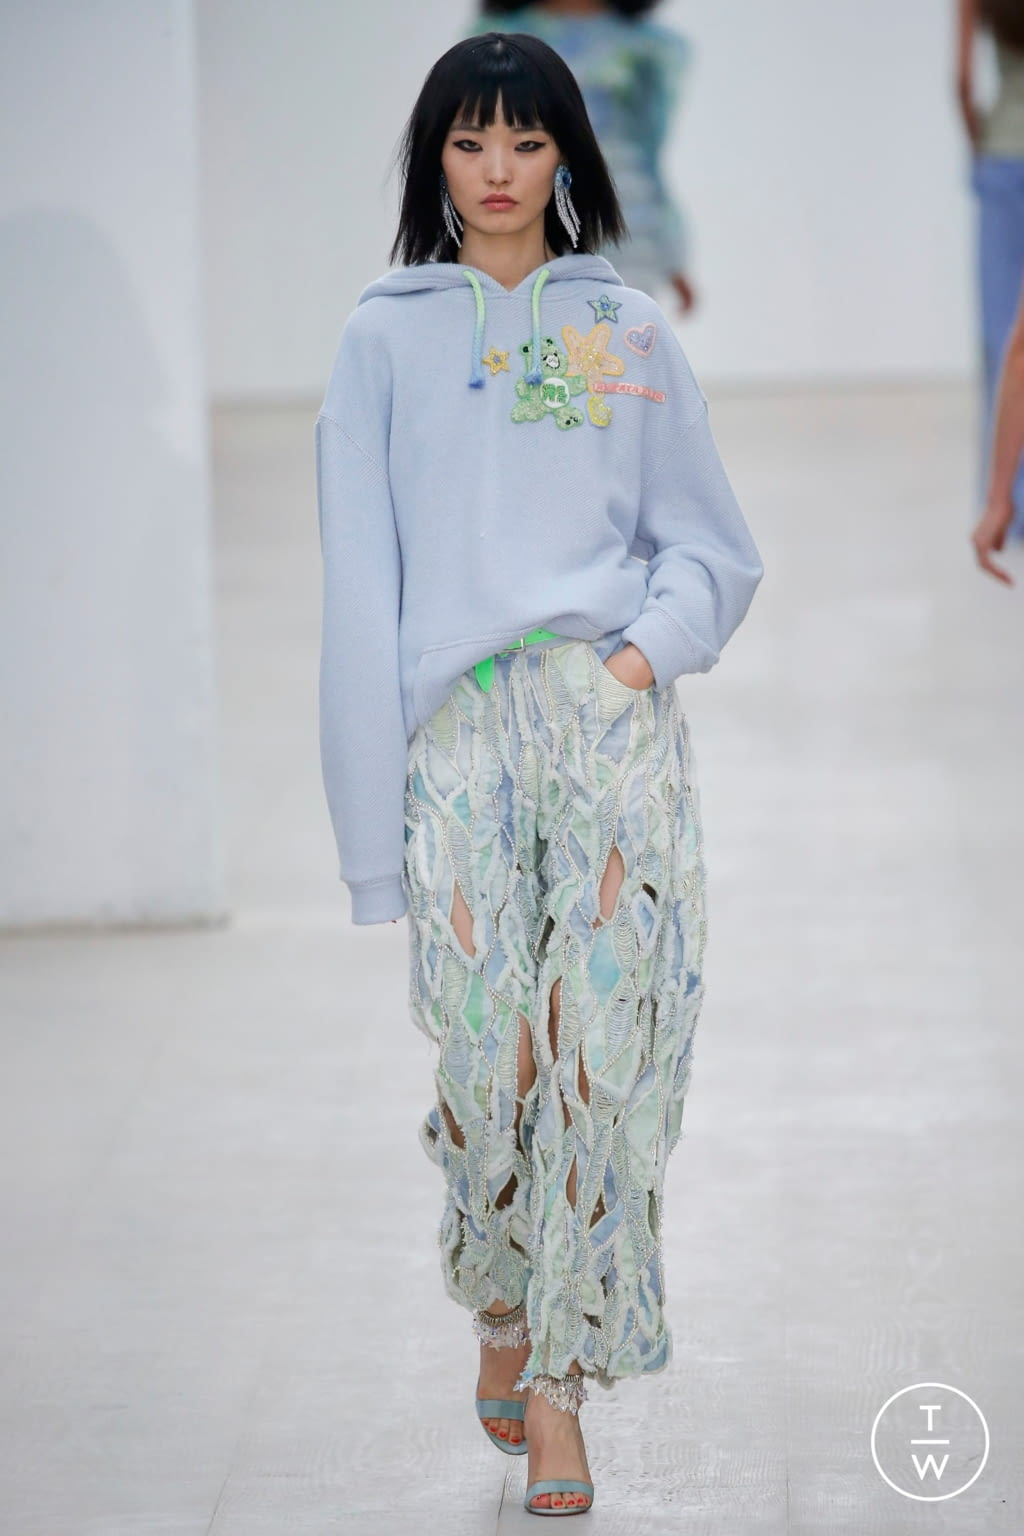 Fashion Week London Spring/Summer 2020 look 9 de la collection Roberta Einer womenswear